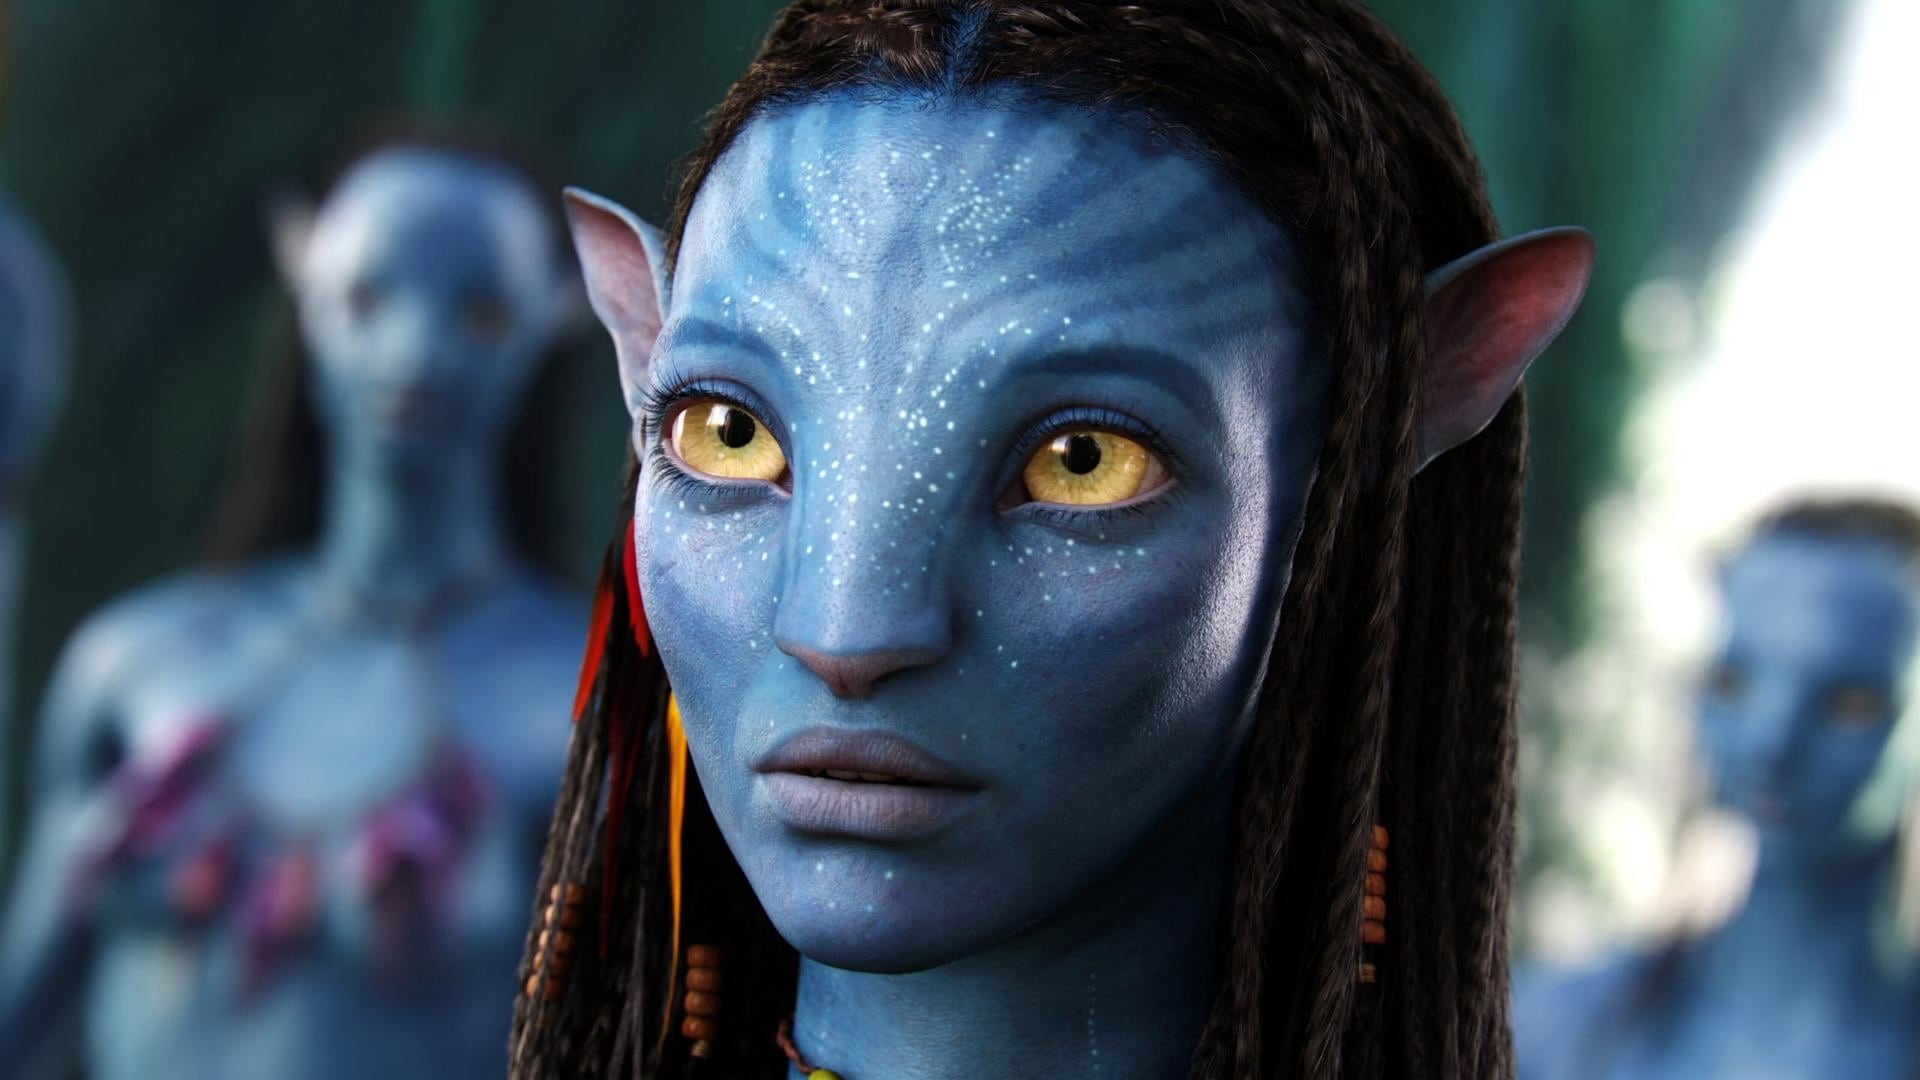 Avatar is also now a Disney movie franchise